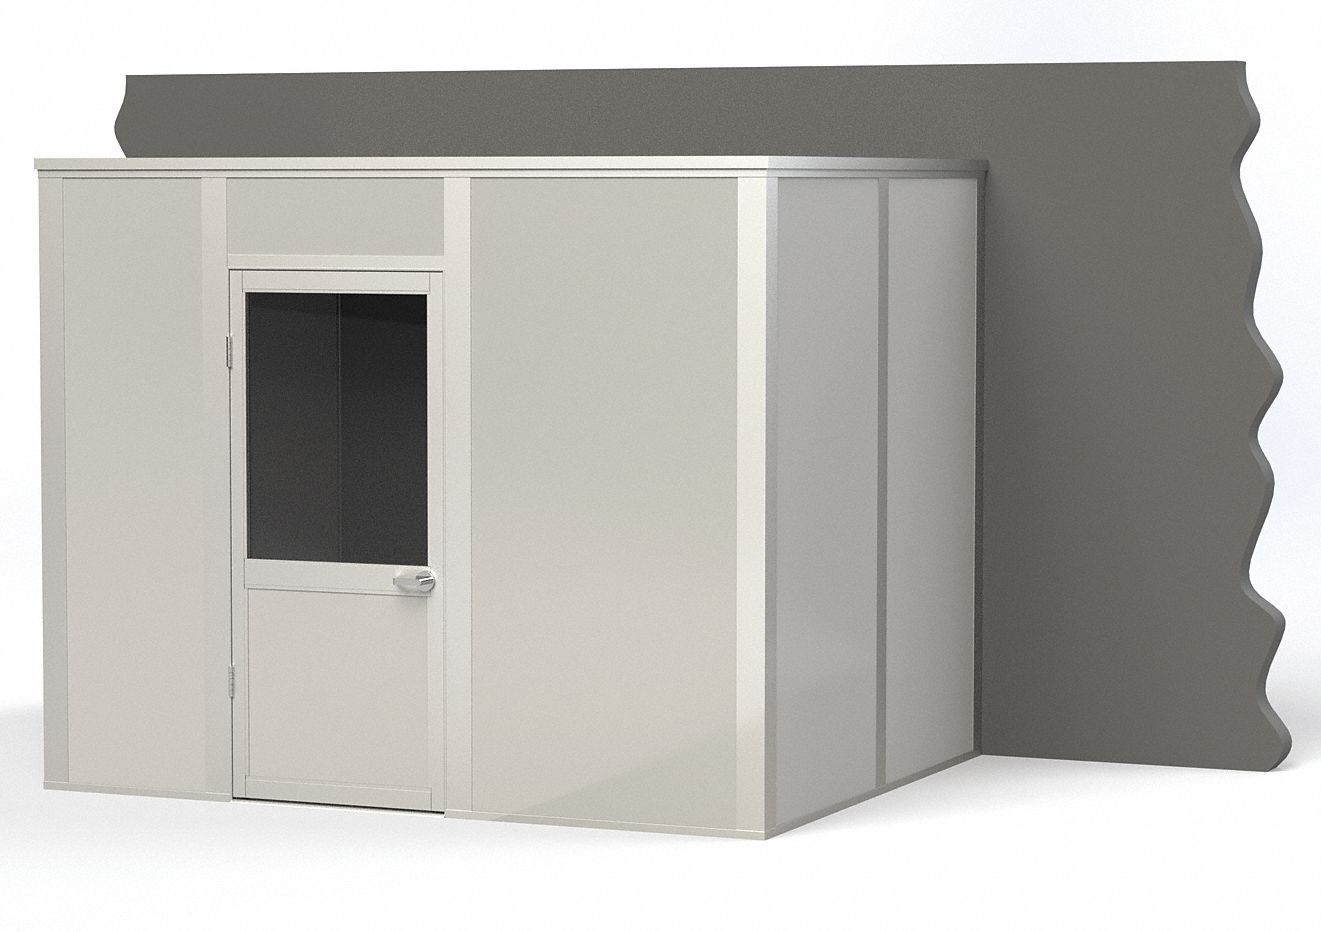 Modular In-Plant Office,  3-Wall,  10 ft. Width,  8 ft. Depth,  8 ft. Height